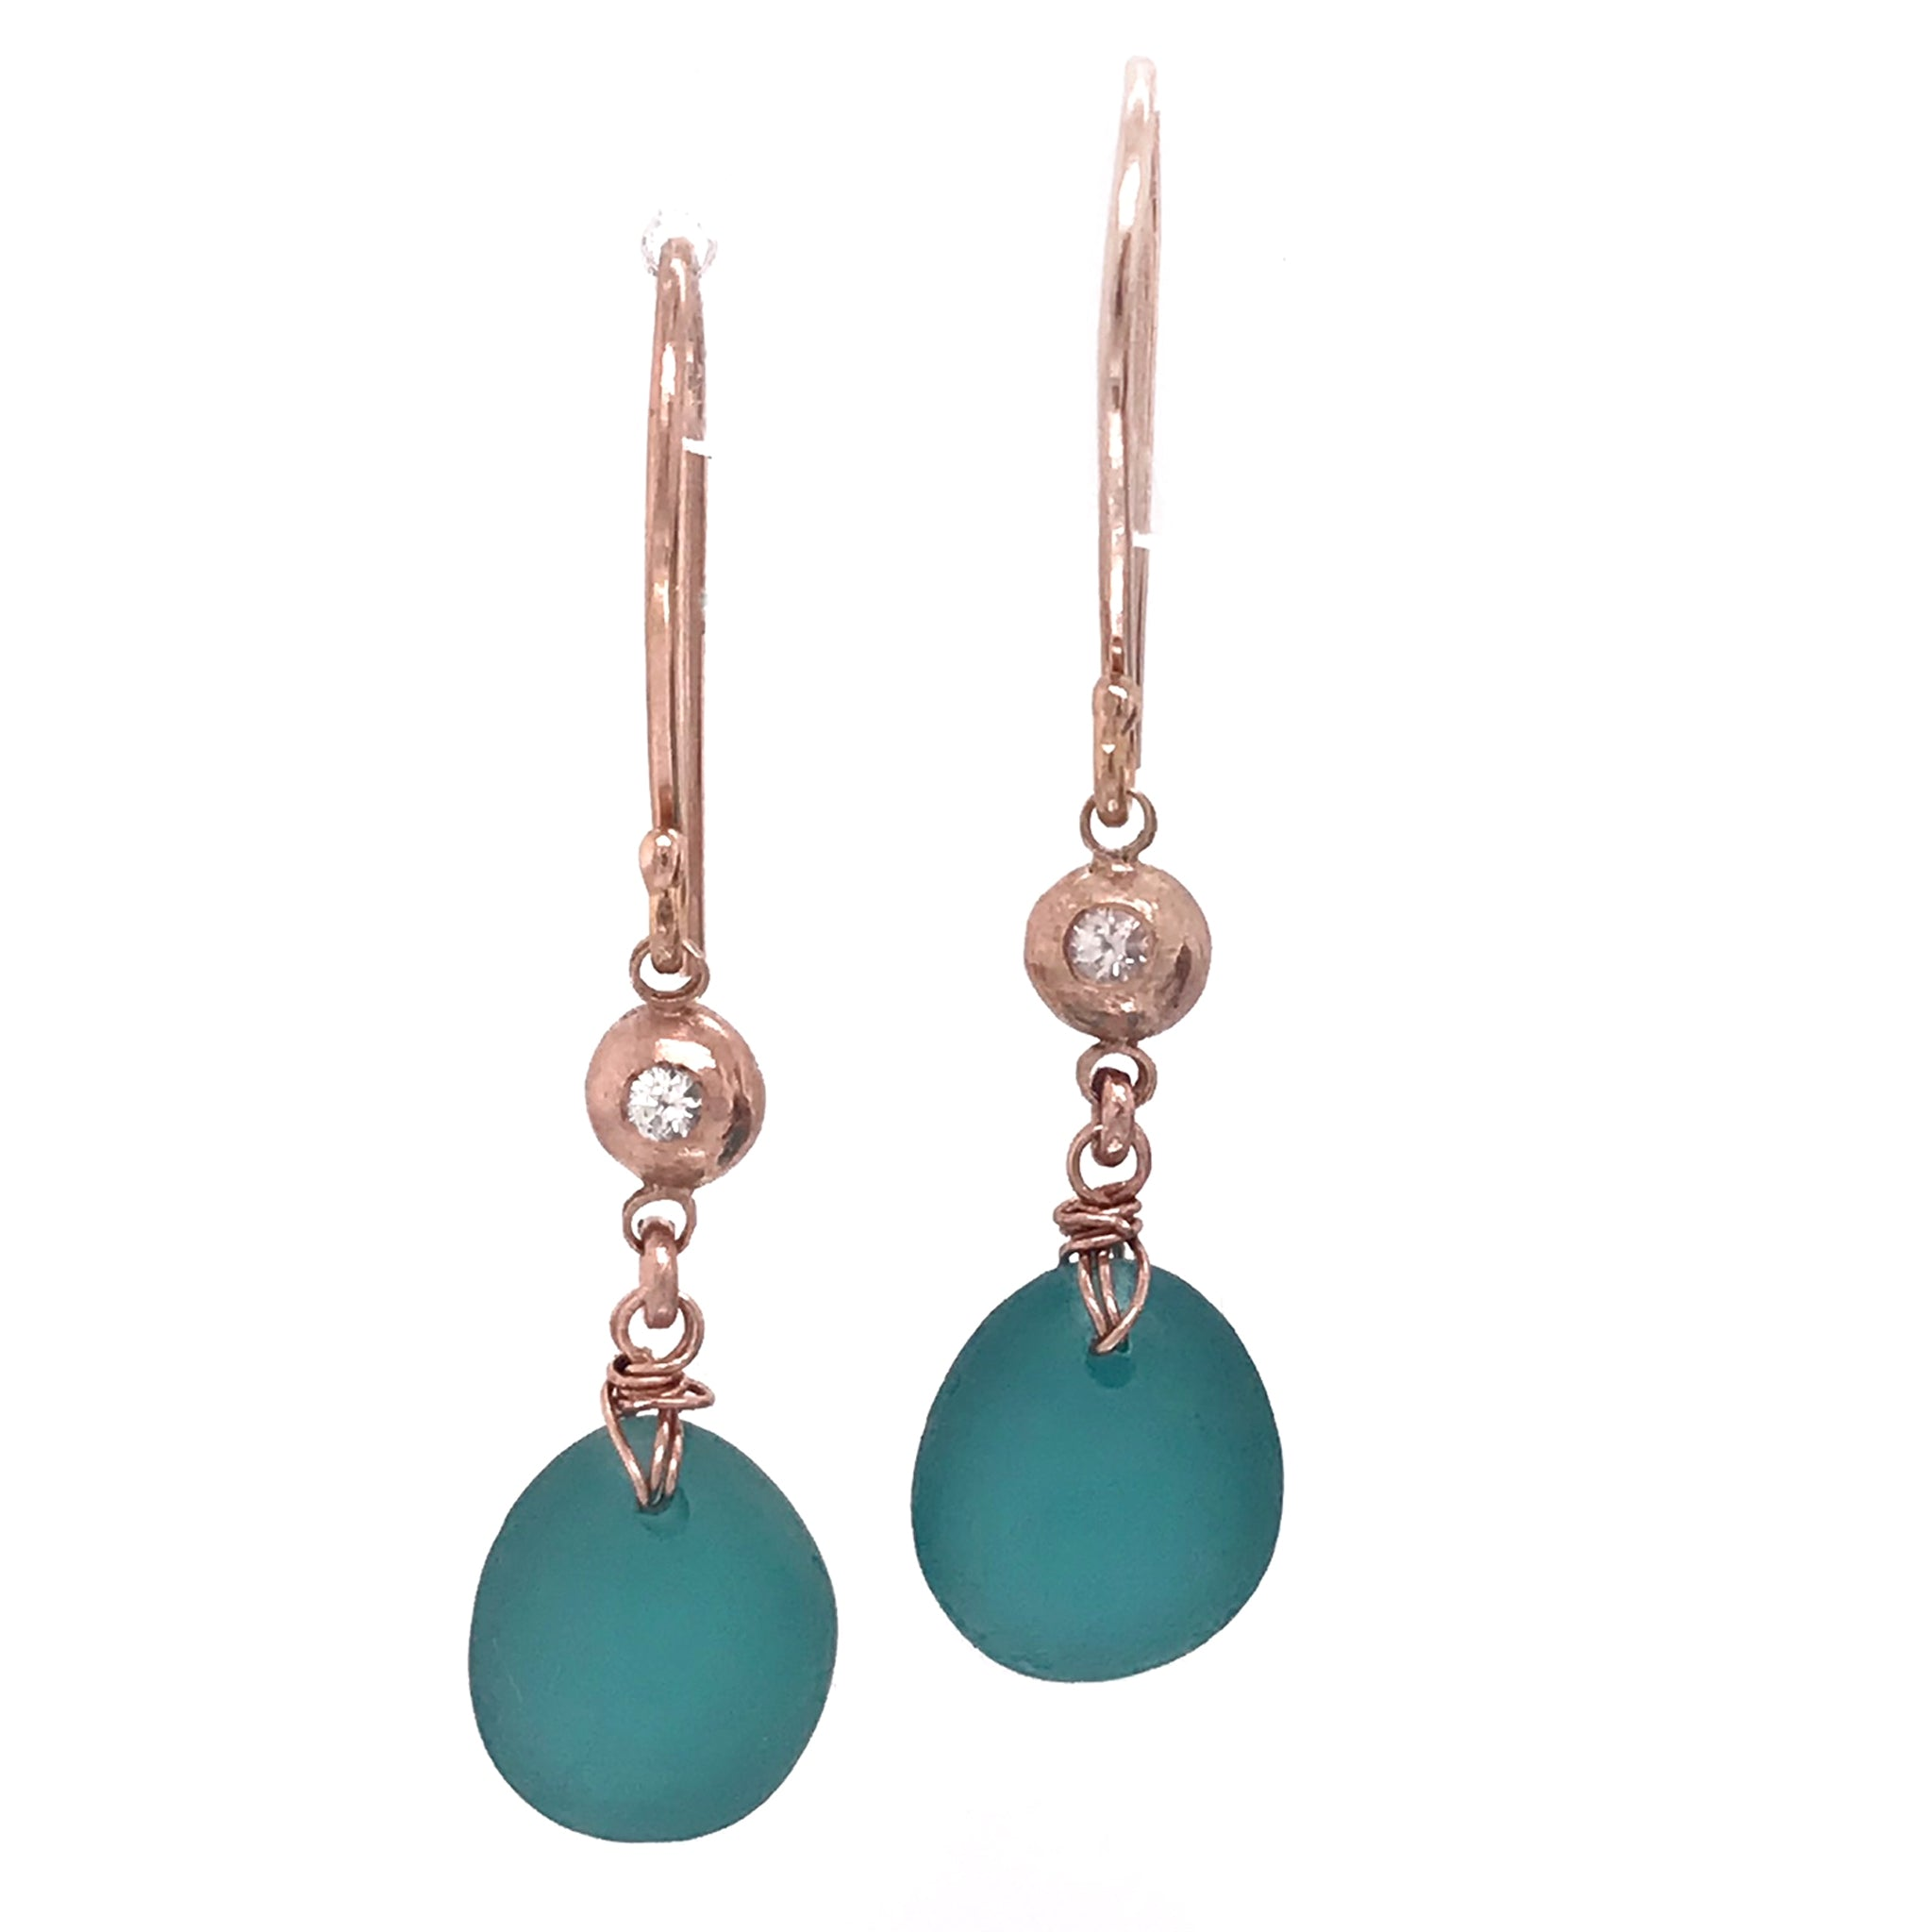 Teal-seaglass-earrings-rose-gold-with-white-sapphires-kriket-broadhurst-unique-Christmas-gifts-Sydney